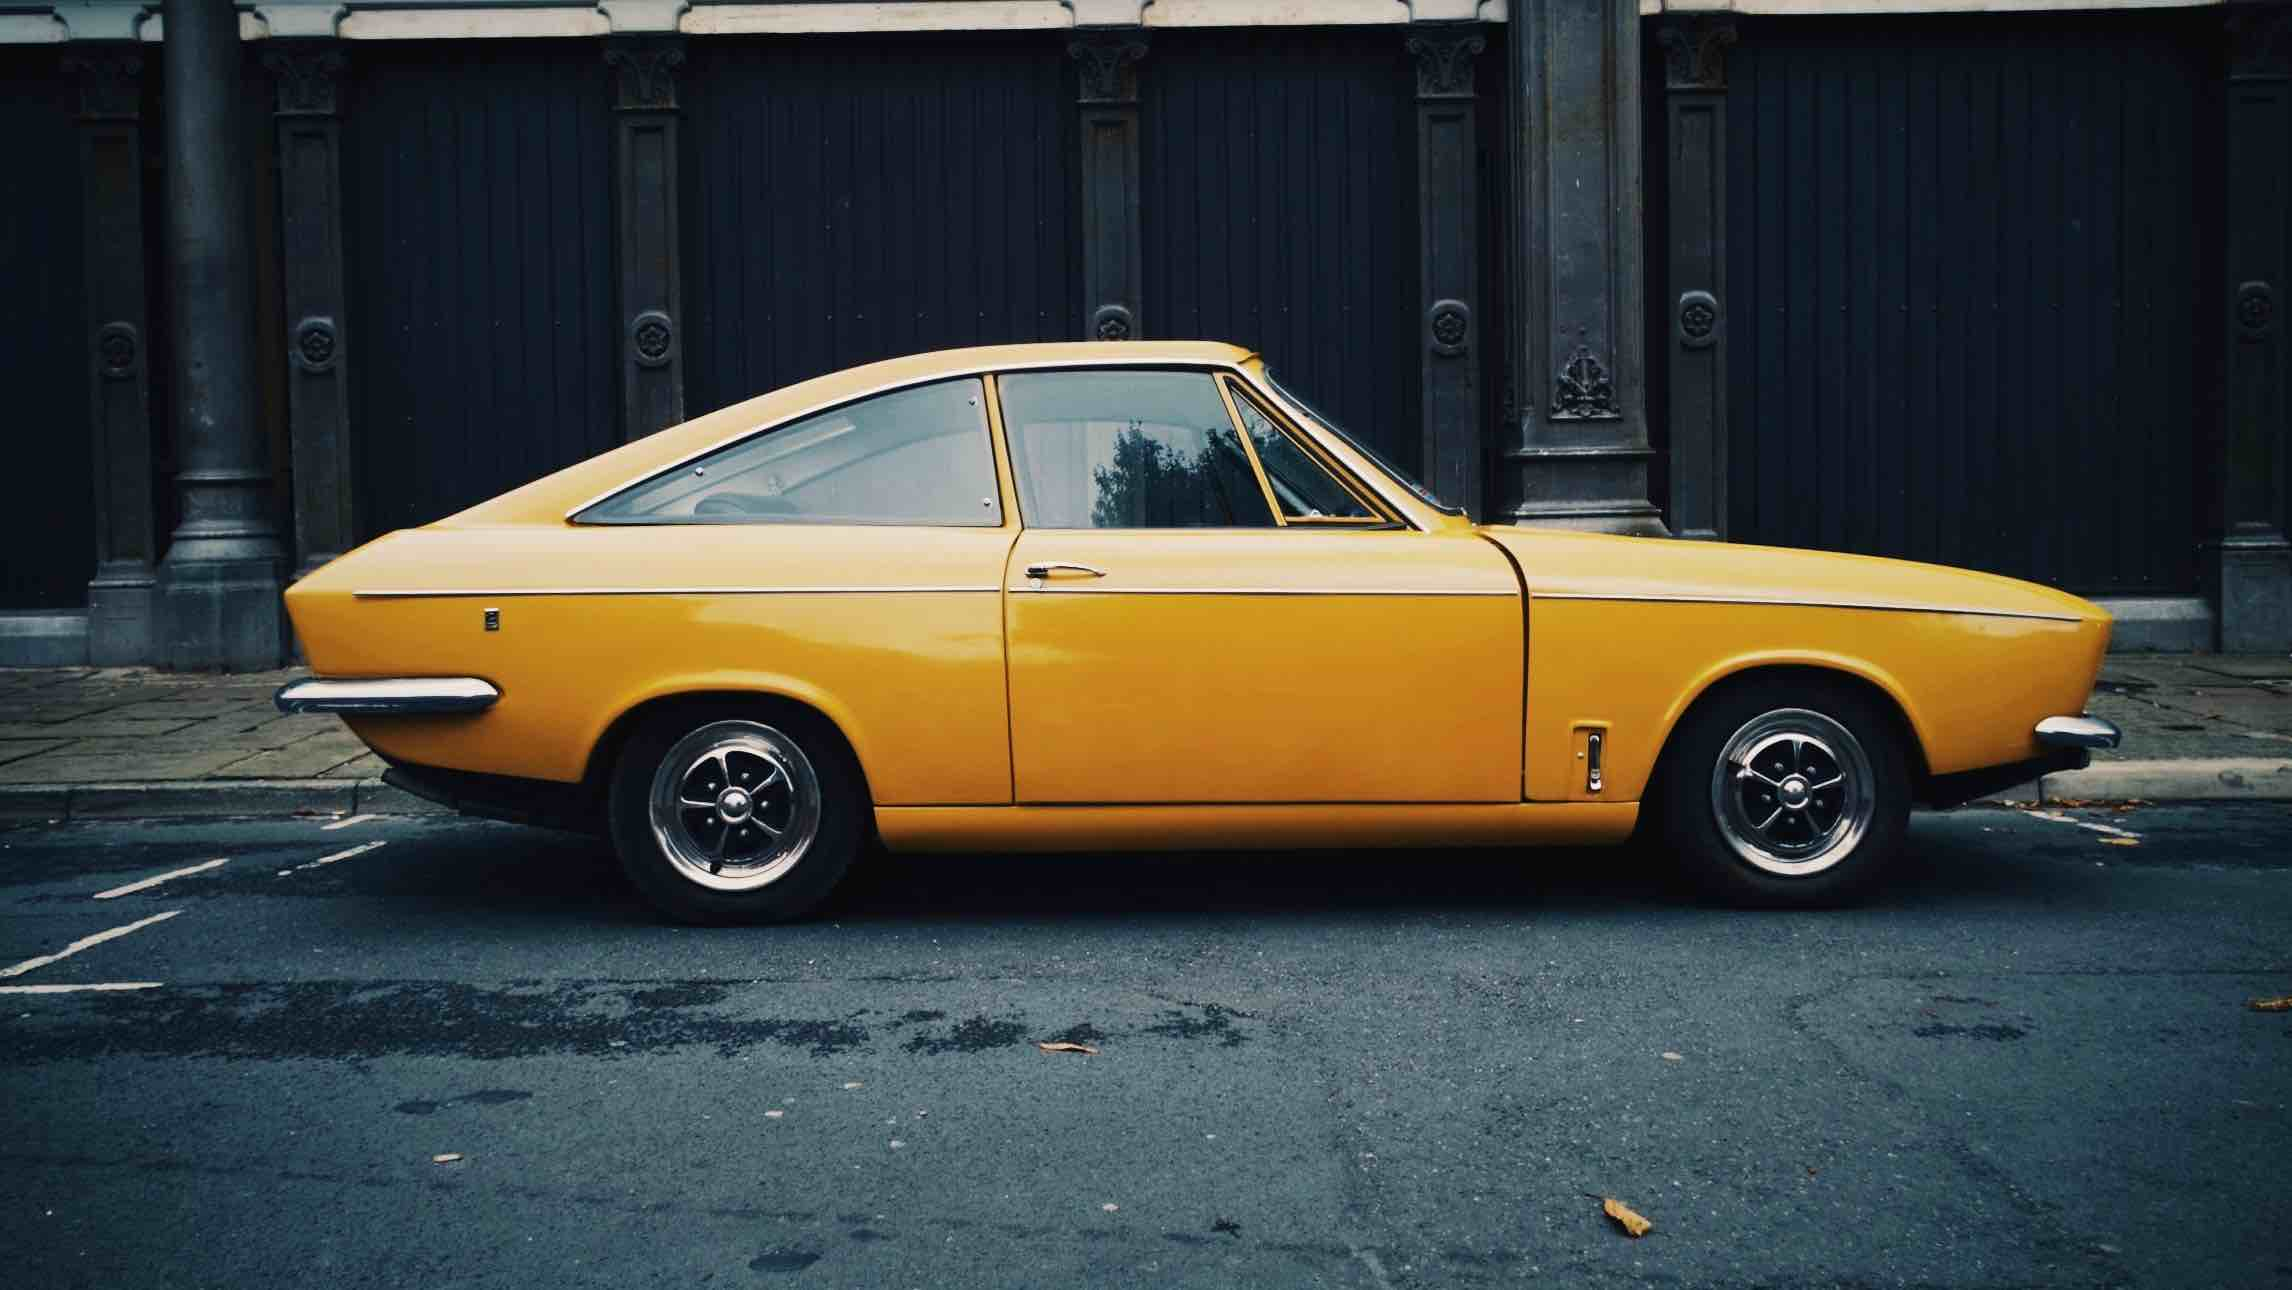 Classic yellow car with insurance